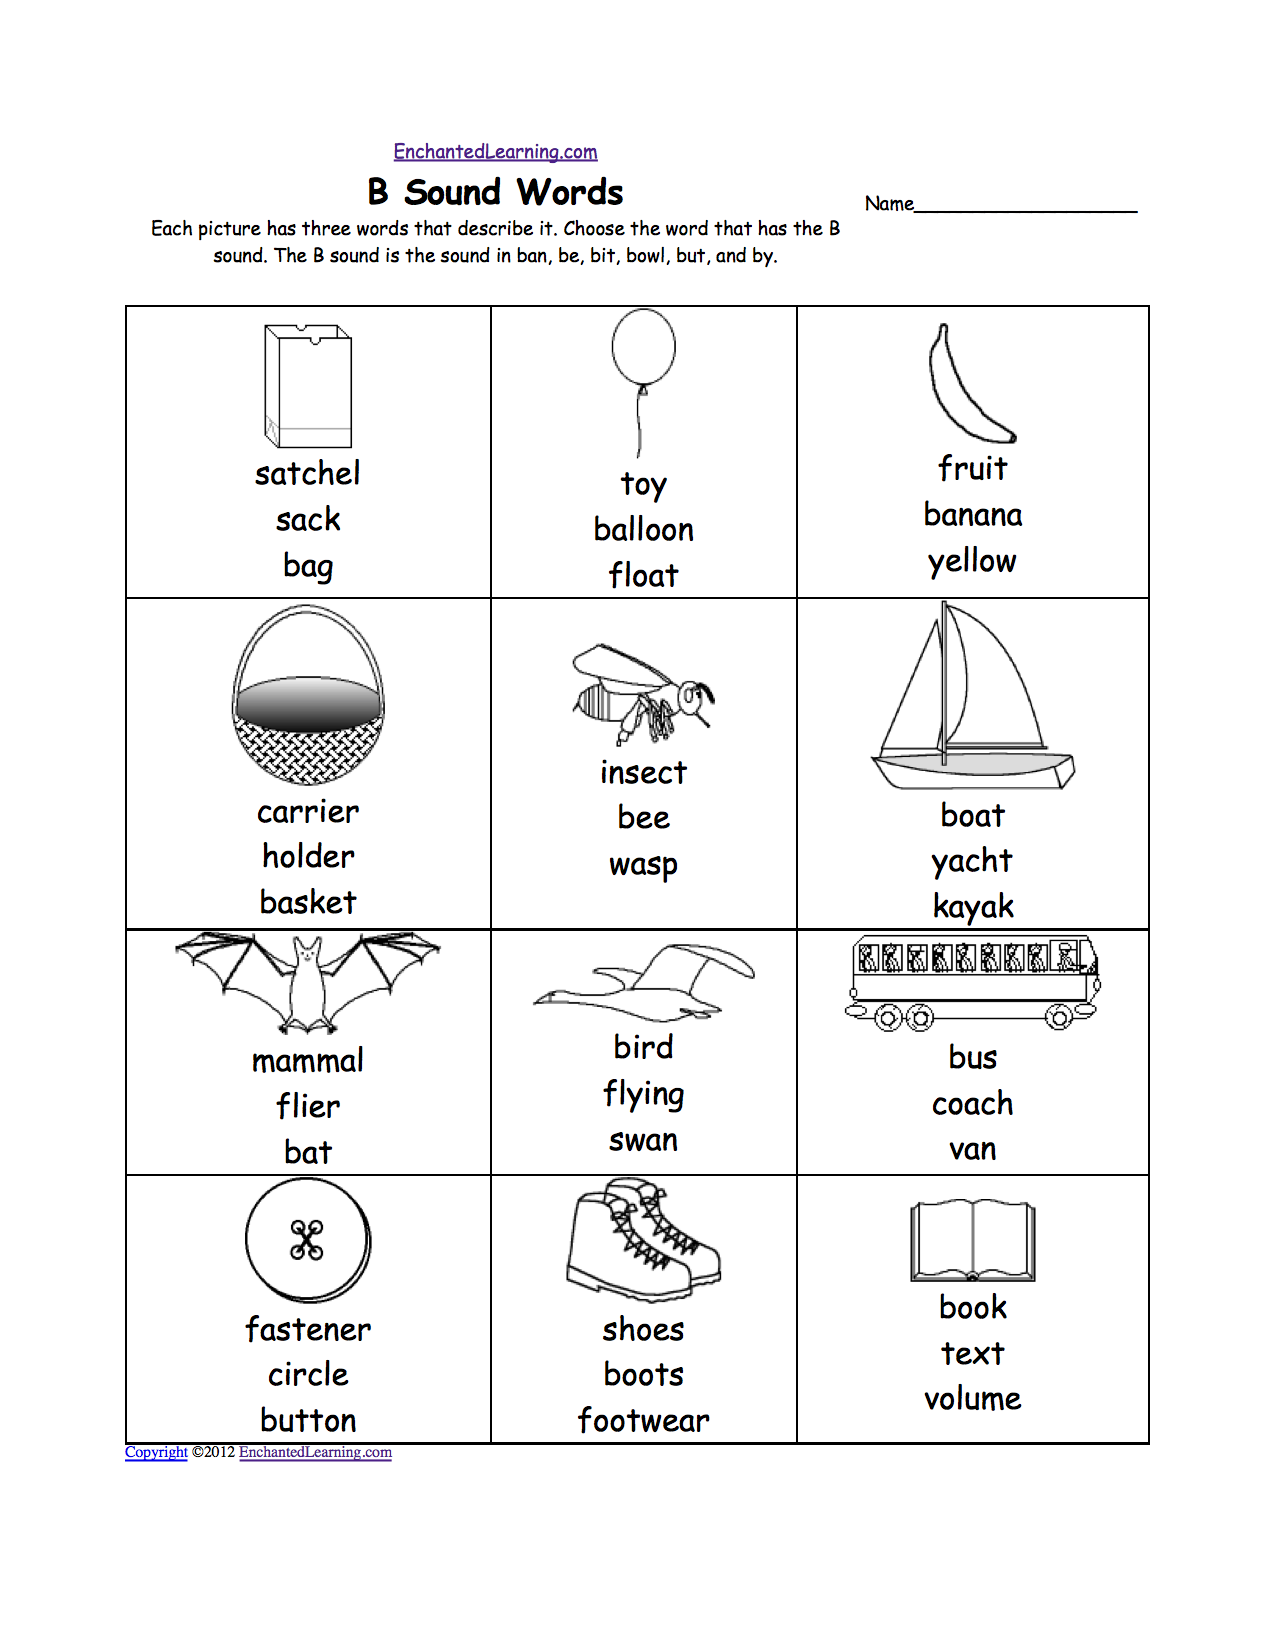 Weirdmailus  Fascinating Phonics Worksheets Multiple Choice Worksheets To Print  With Licious Quotbquot Sound Phonics Worksheet Multiple Choice Each Picture Has Three Words That Describe It Choose The Word That Has A Quotbquot Sound The Quotbquot Sound Is The Sound  With Endearing Nickel Worksheets Also Transformations Of Graphs Worksheet In Addition Money Identification Worksheets And  Eic Worksheet As Well As Rounding To The Nearest  Worksheet Additionally Touch Math Multiplication Worksheets From Enchantedlearningcom With Weirdmailus  Licious Phonics Worksheets Multiple Choice Worksheets To Print  With Endearing Quotbquot Sound Phonics Worksheet Multiple Choice Each Picture Has Three Words That Describe It Choose The Word That Has A Quotbquot Sound The Quotbquot Sound Is The Sound  And Fascinating Nickel Worksheets Also Transformations Of Graphs Worksheet In Addition Money Identification Worksheets From Enchantedlearningcom